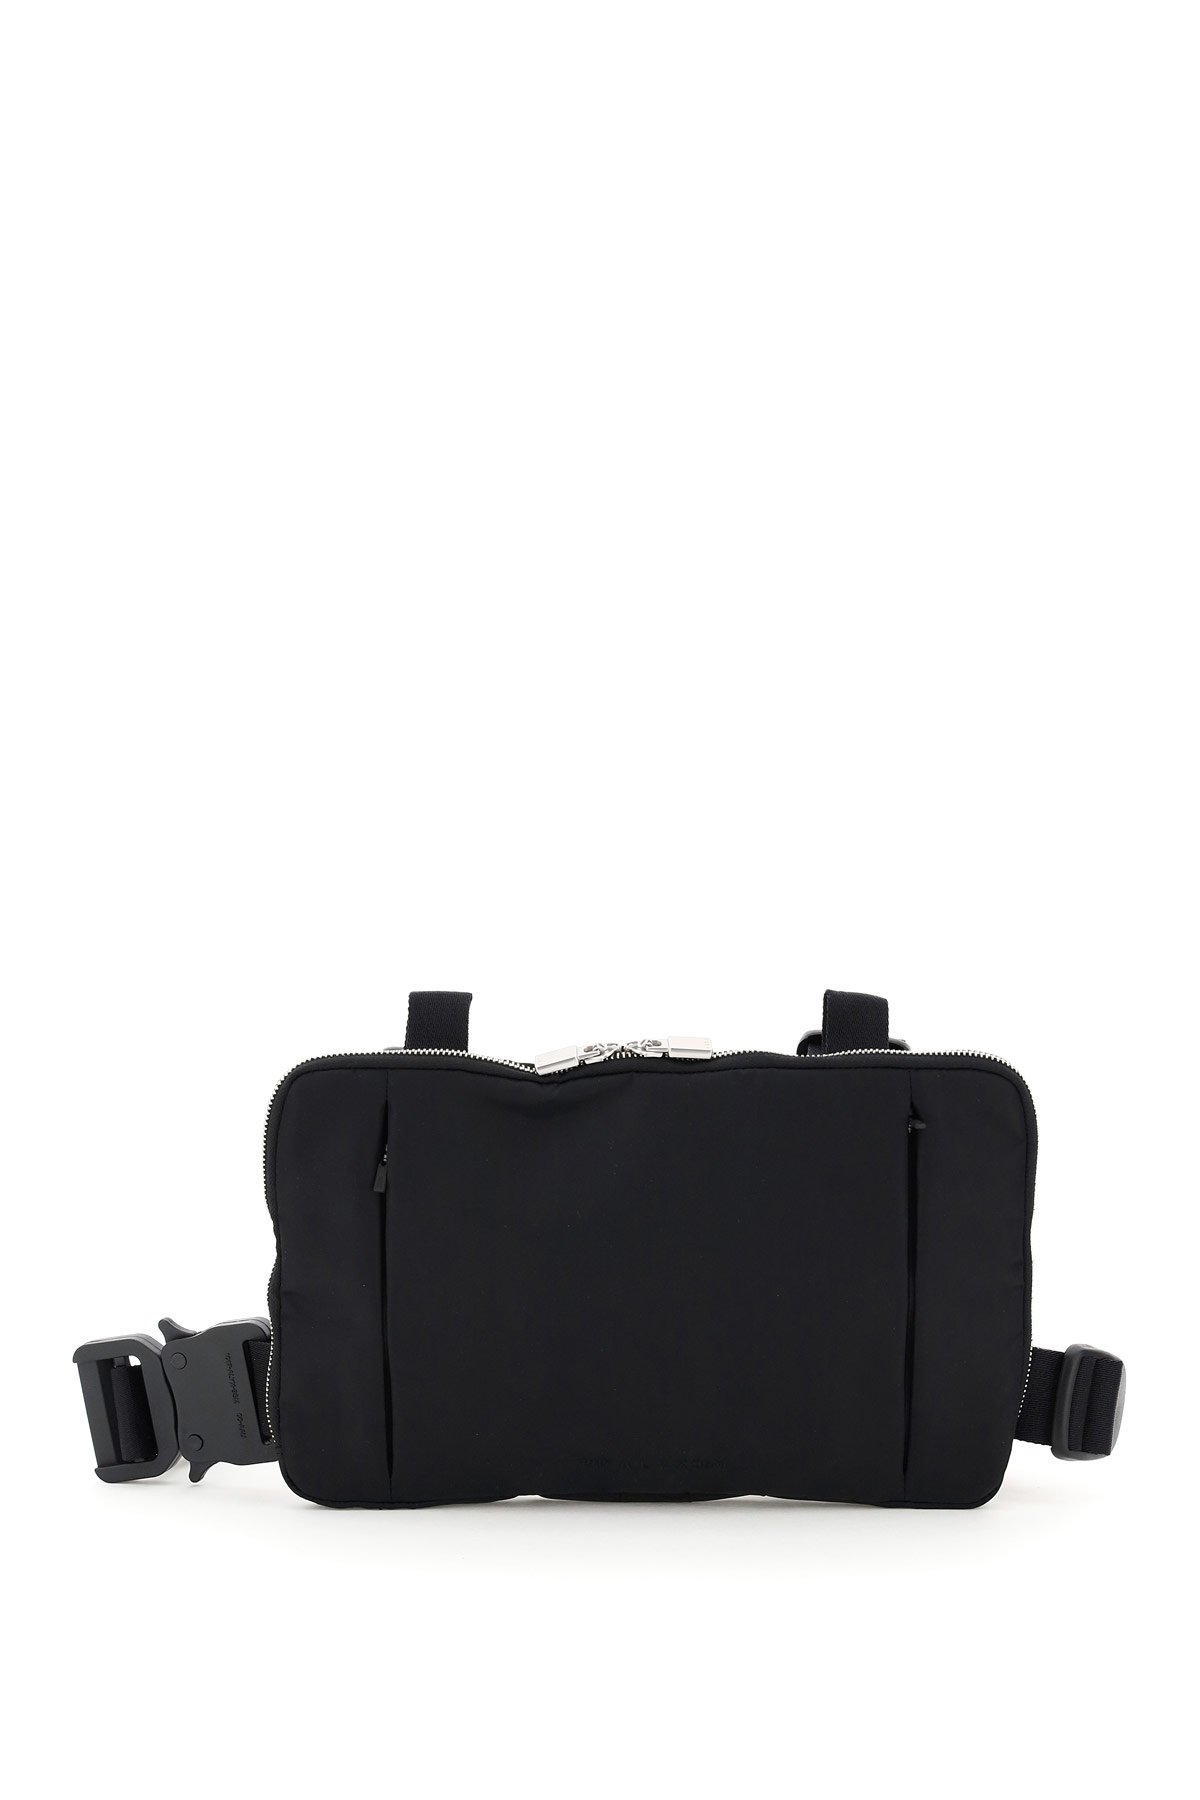 1017 alyx 9sm pouch harness chest rig